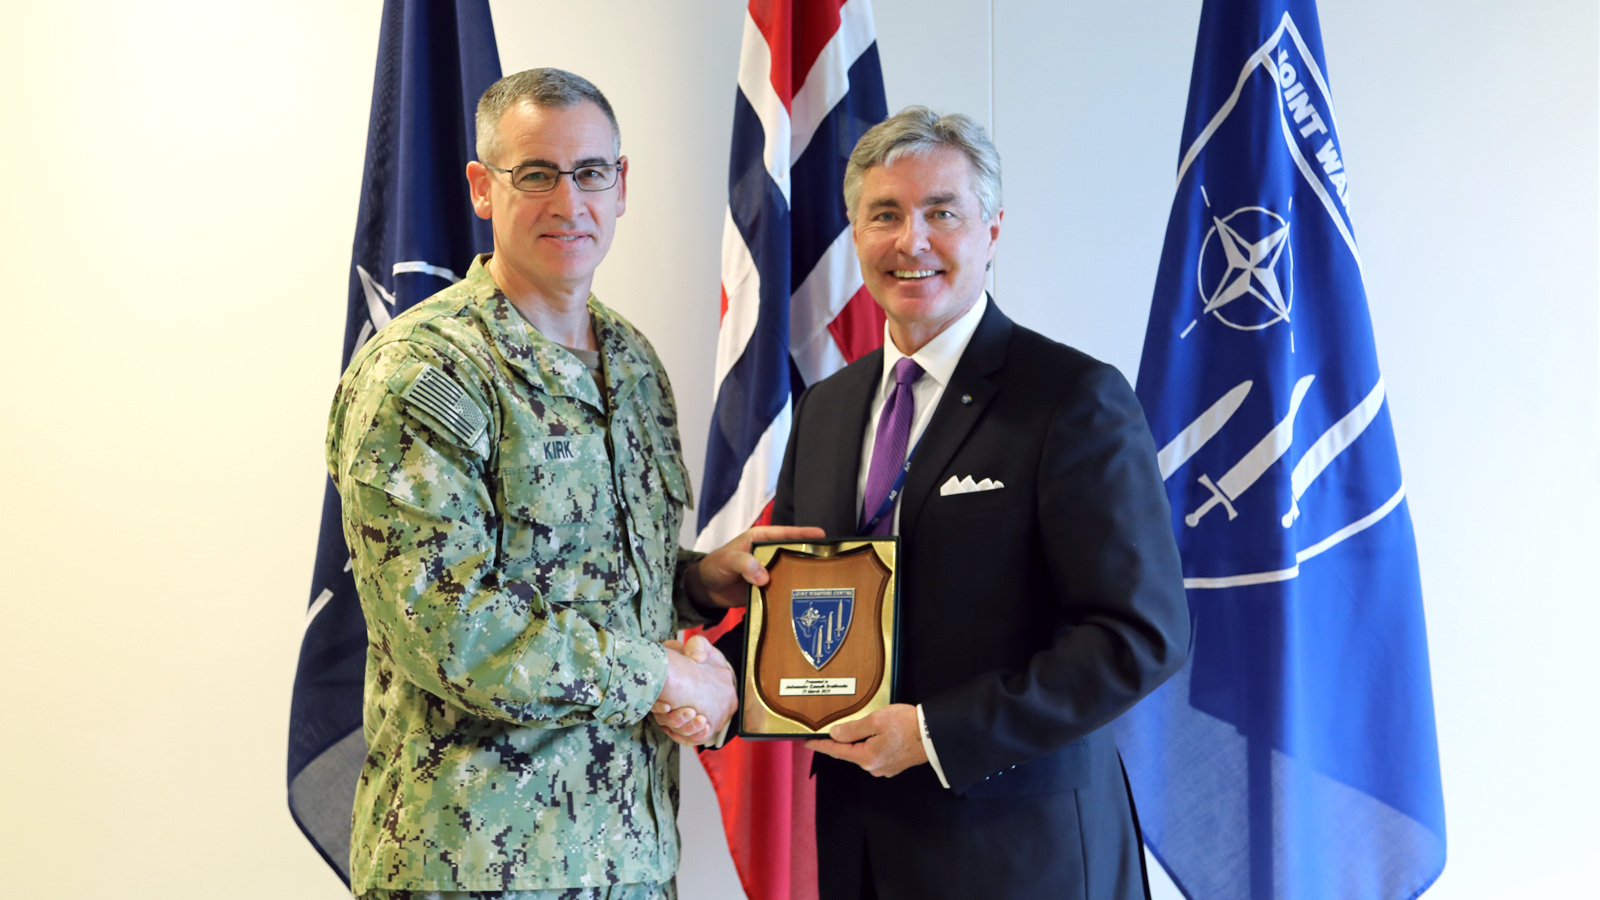 The U.S. Ambassador to Norway visits JWC